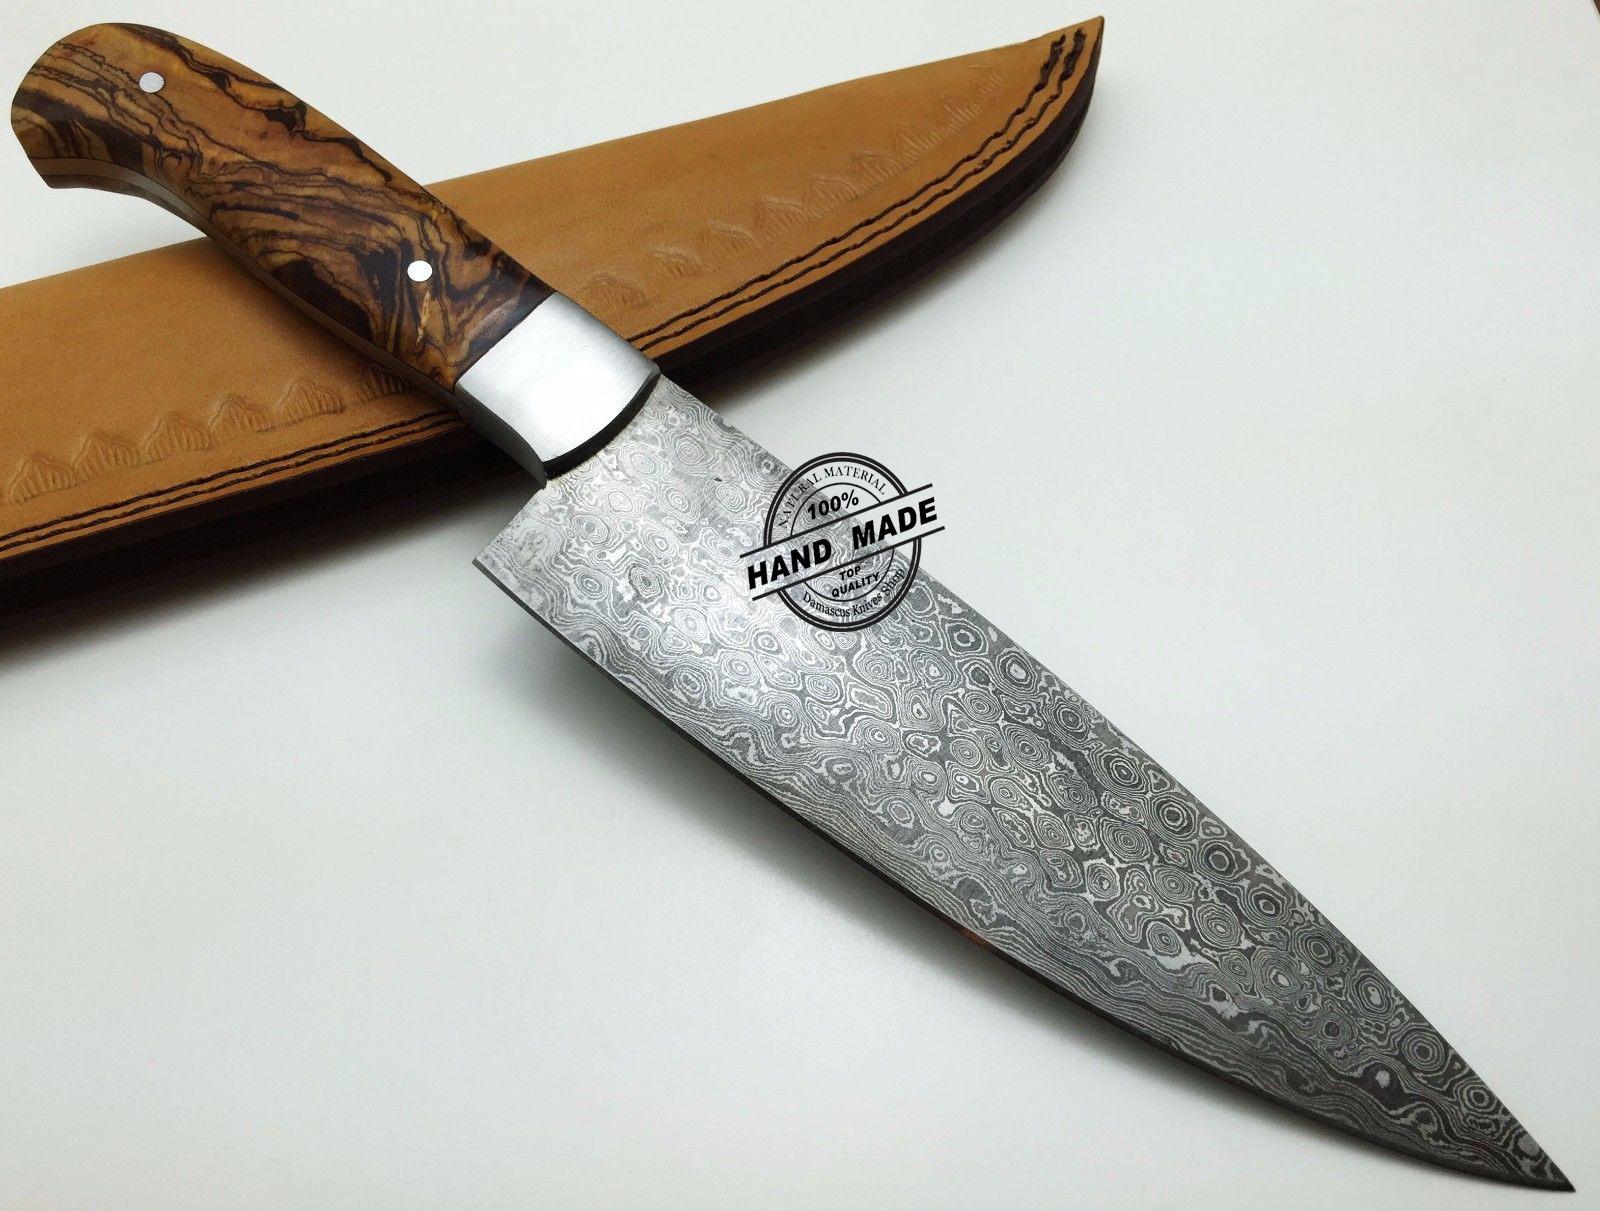 Regular Damascus Kitchen Knife Custom Handmade Damascus Steel Kitchen Chefs  Knife With Rose Wood Handle Leather Sheaths 1569